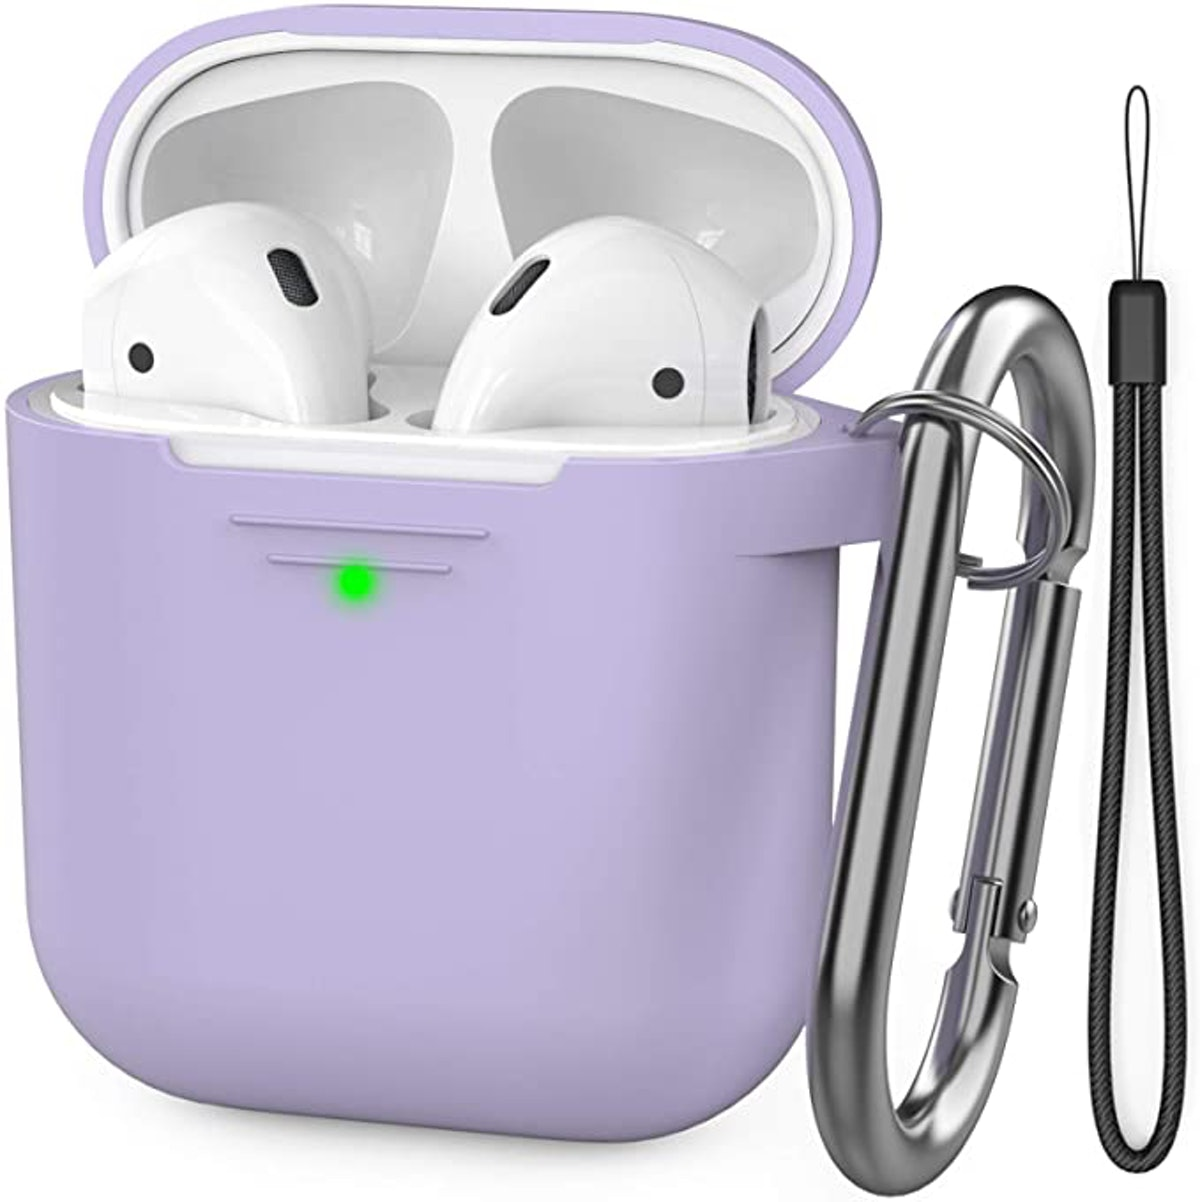 AhaStyle AirPods Case